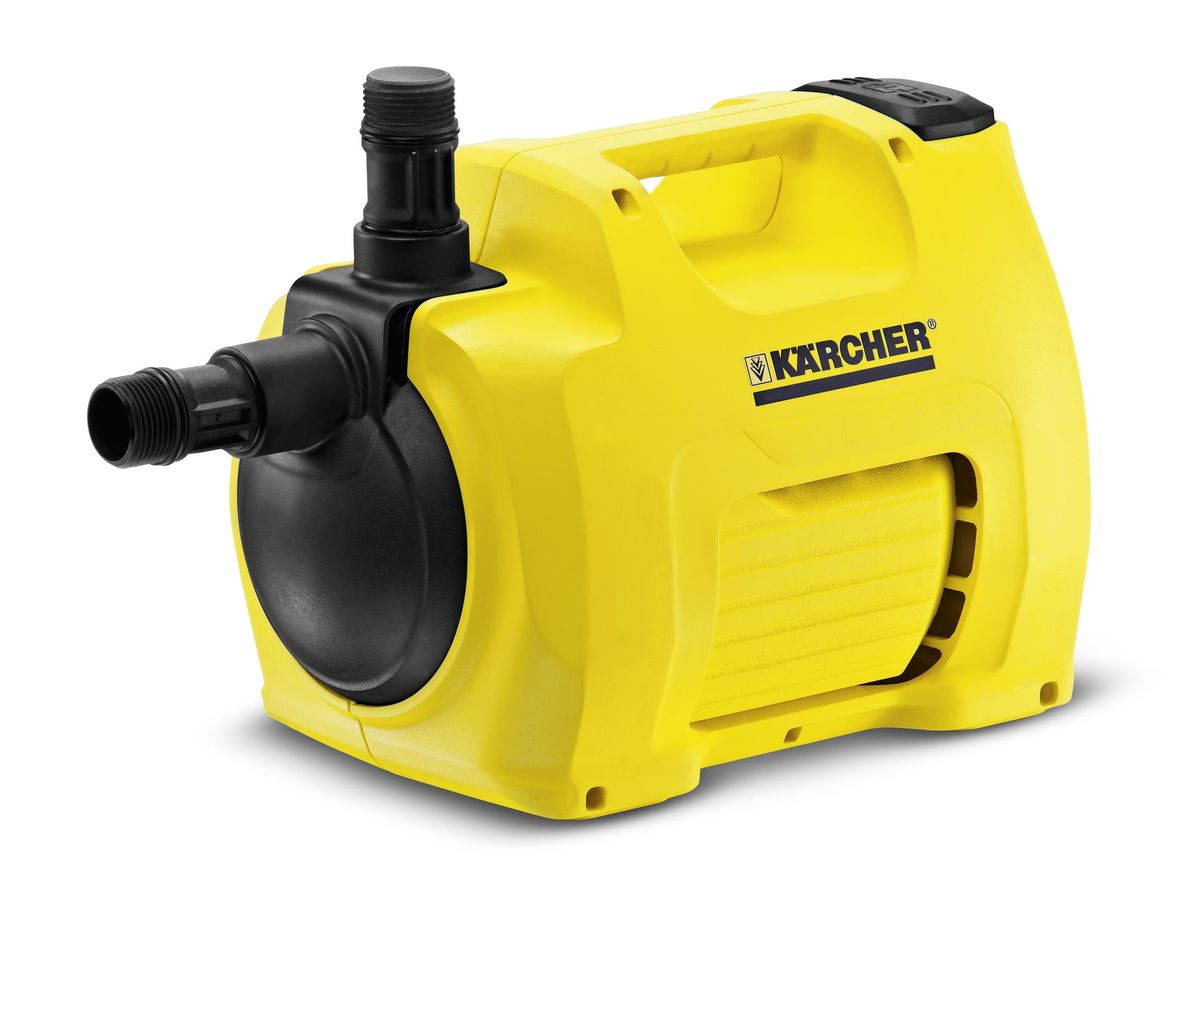 Насос для дома и сада Karcher BP 3 Garden 1.645-351.0 насос karcher bp 1 barrel 1 645 460